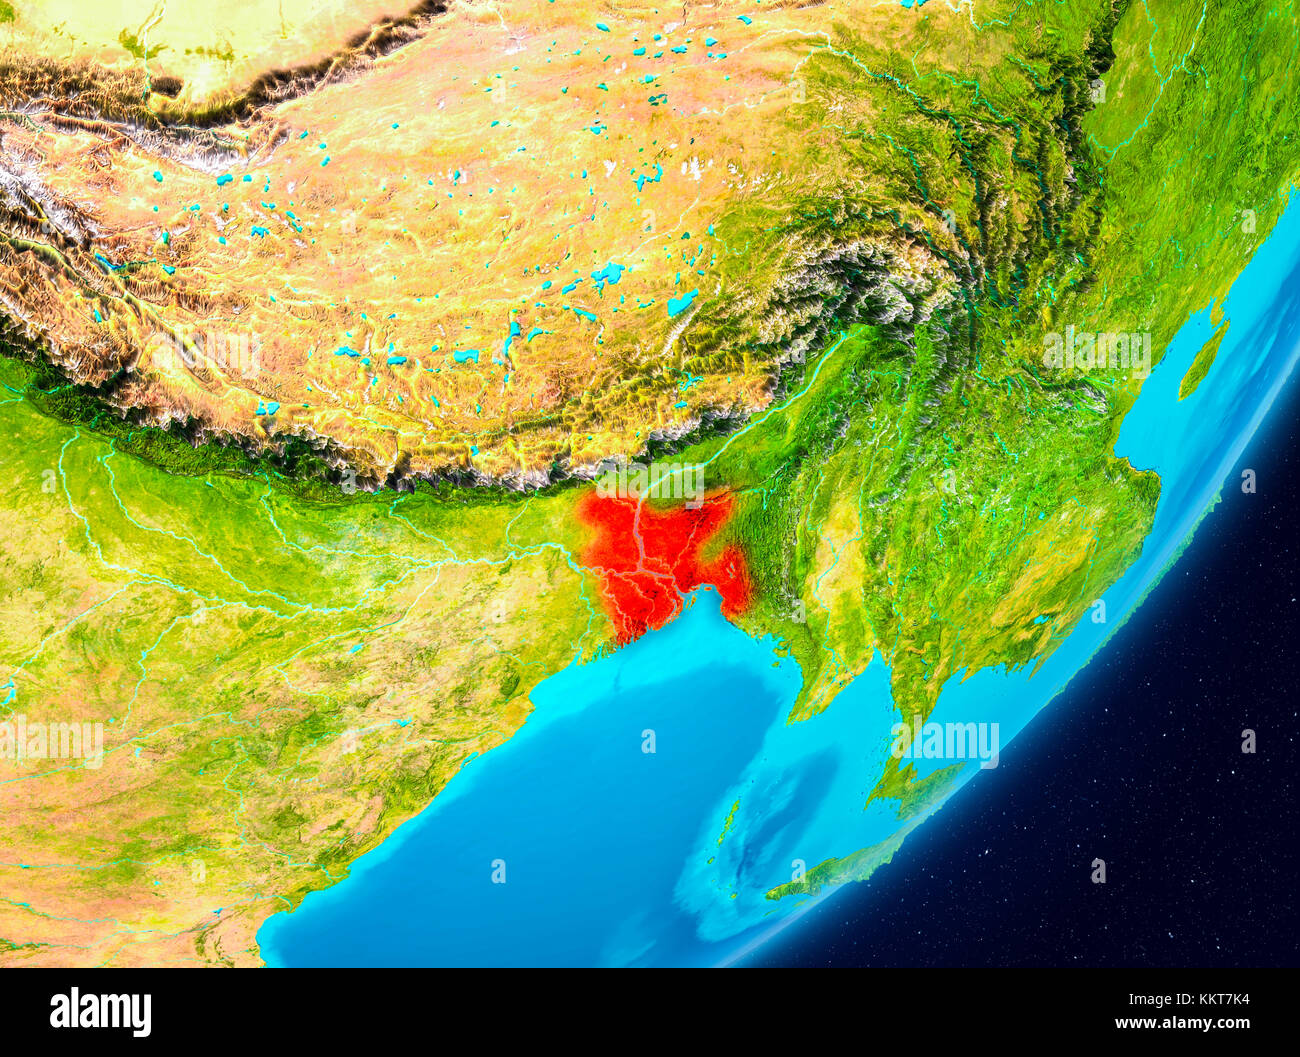 Bangladesh map 3d stock photos bangladesh map 3d stock images map of bangladesh as seen from space on planet earth 3d illustration elements of gumiabroncs Image collections